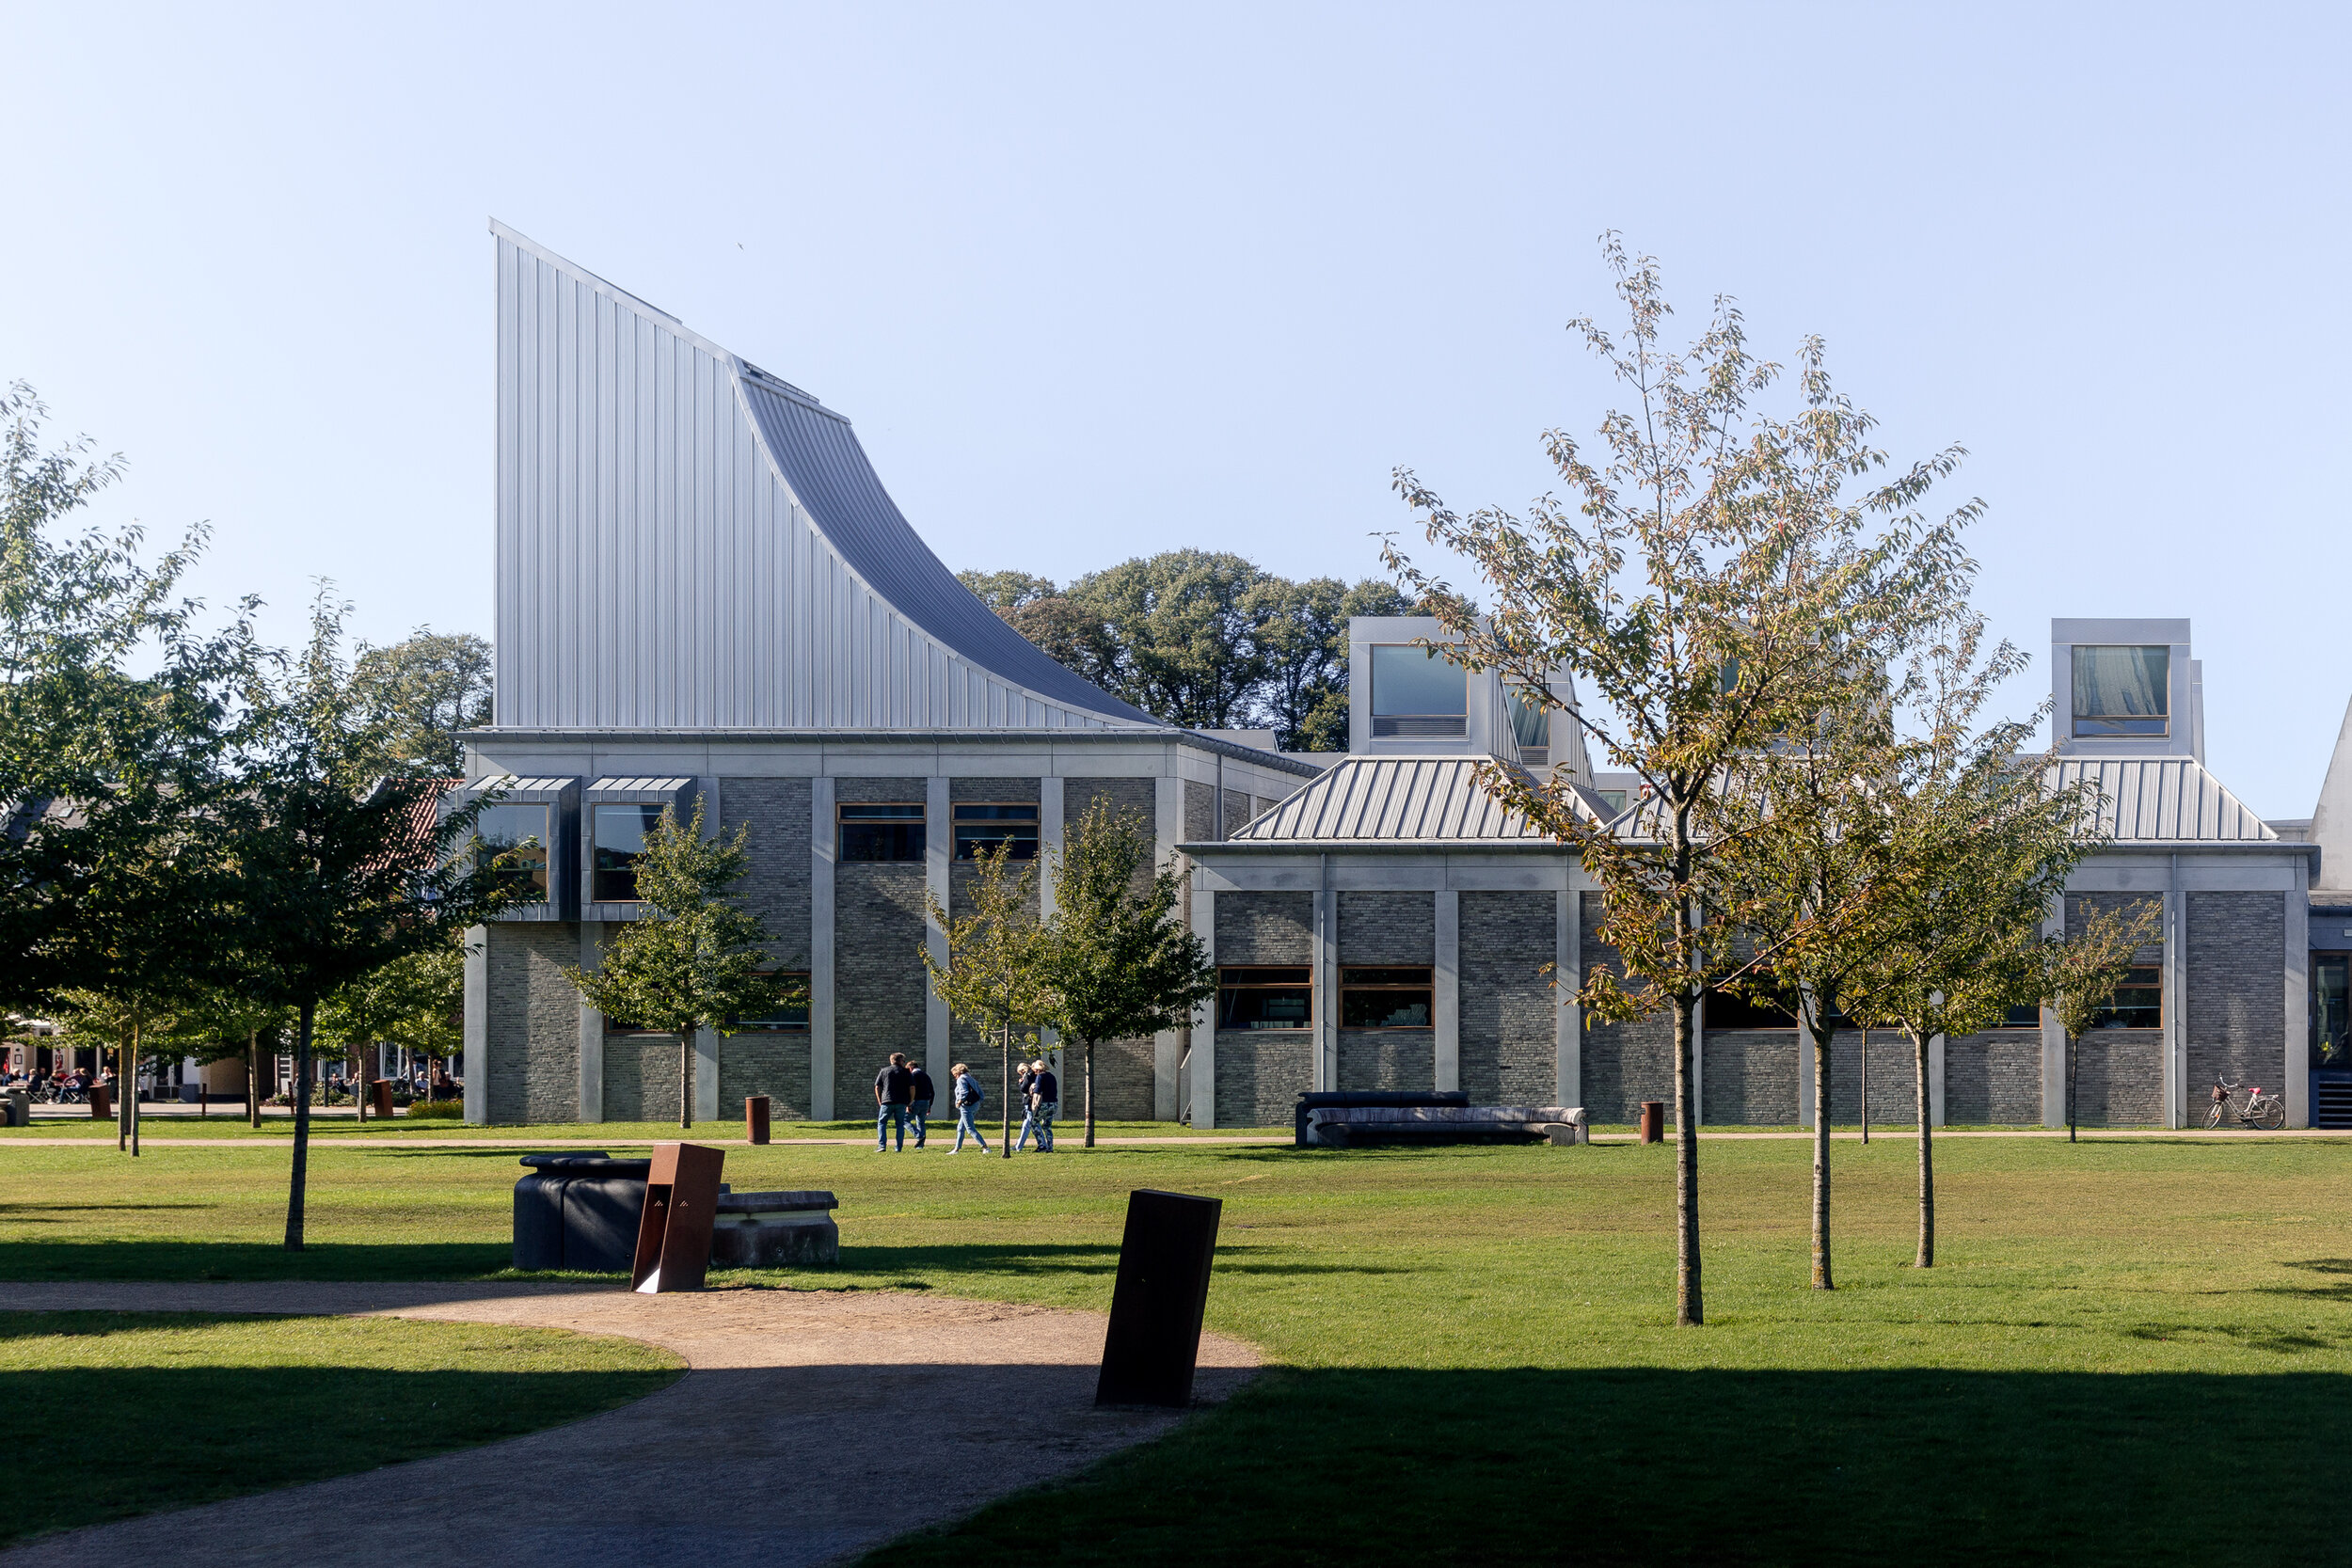 The Utzon Center in Aalborg, photography by Mike Dugenio-4.jpg